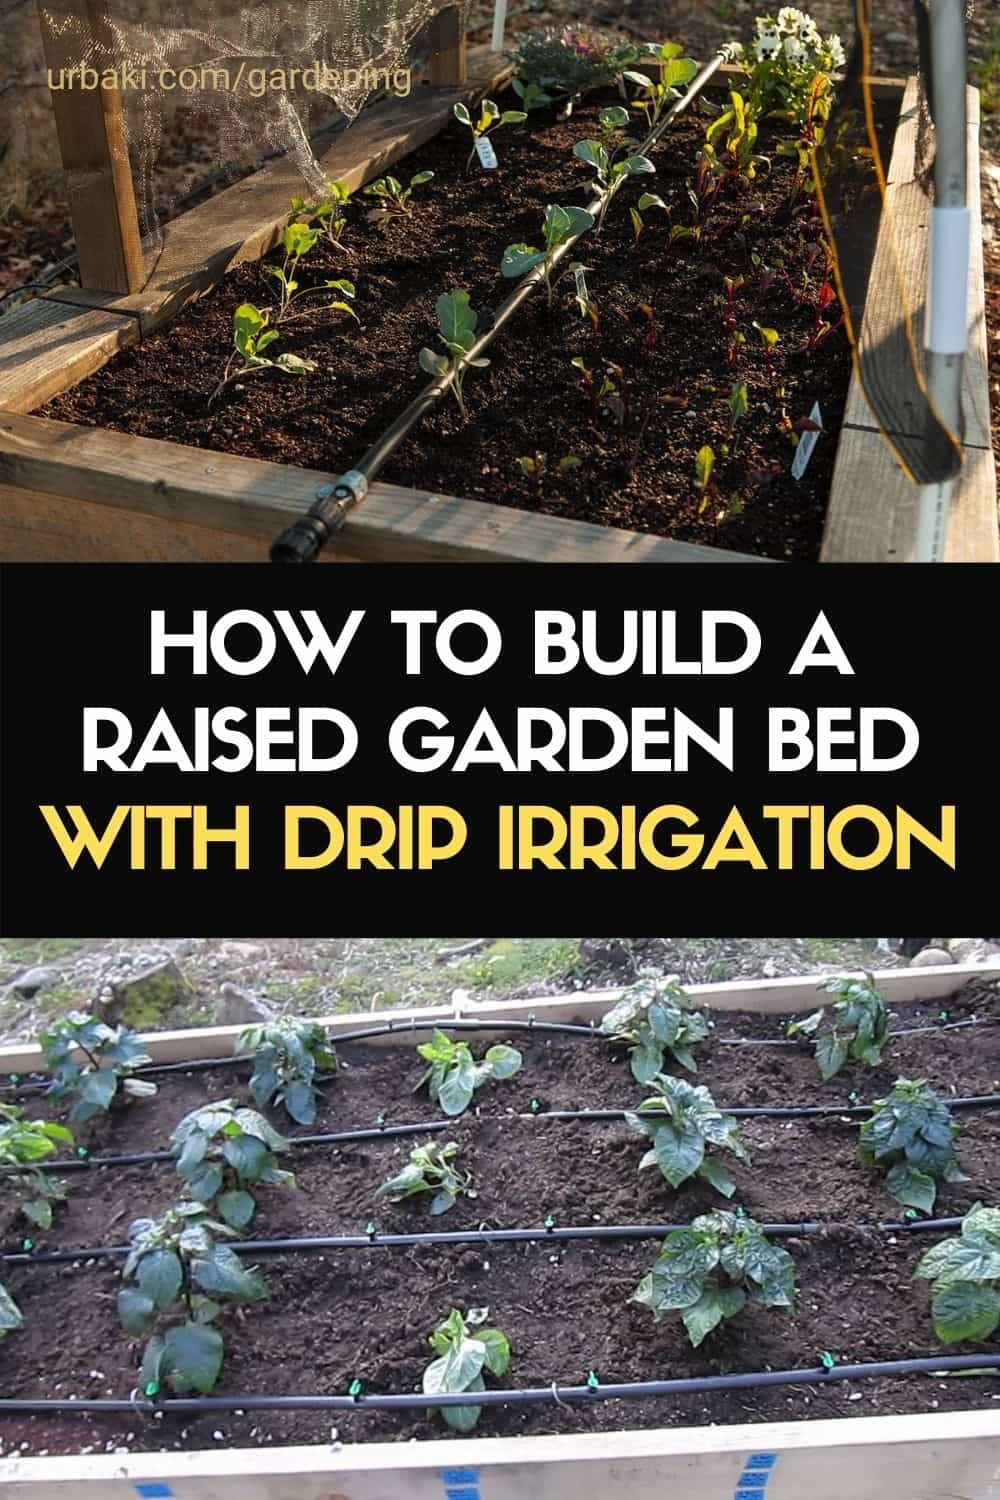 How To Build A Raised Garden Bed With Drip Irrigation